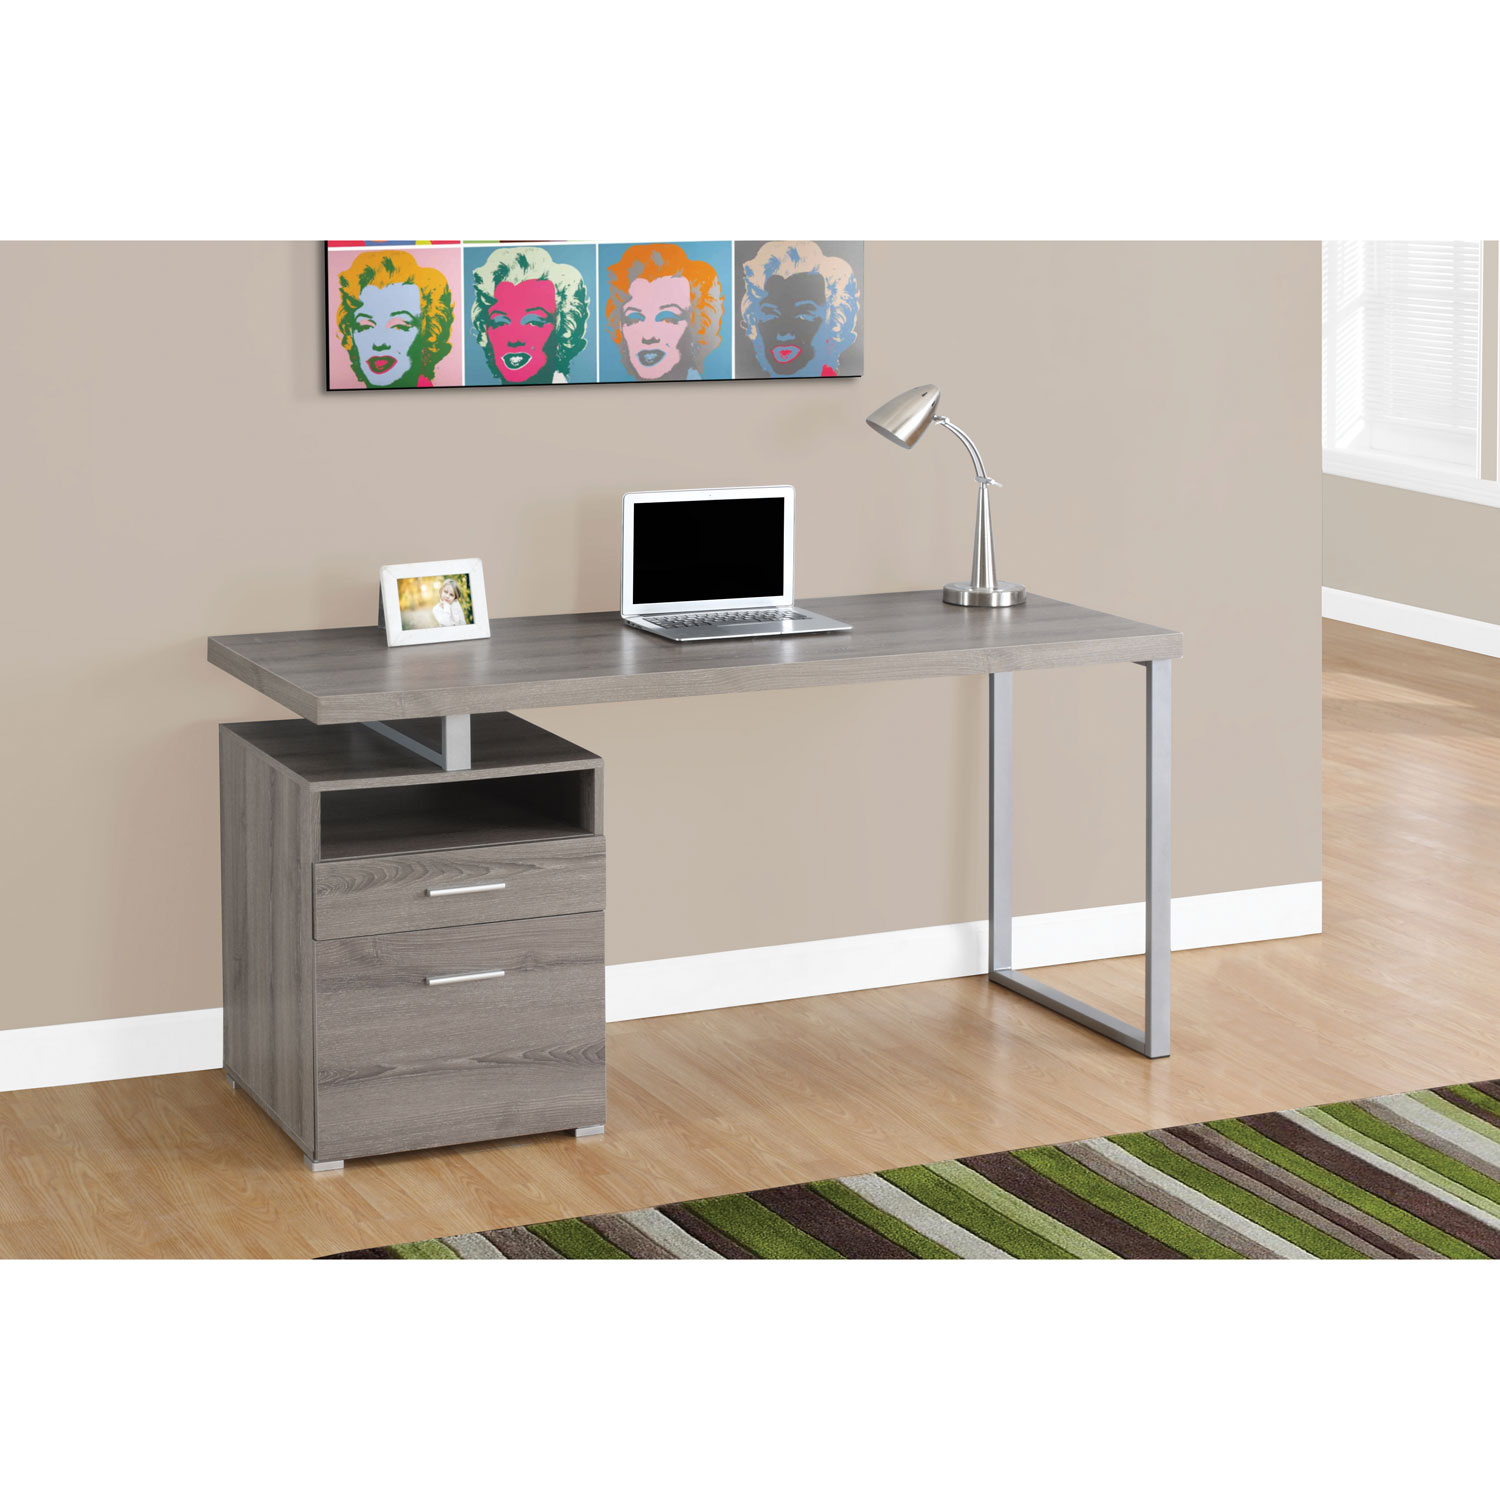 Mobile tv 100 cm - Mobile office desk ...